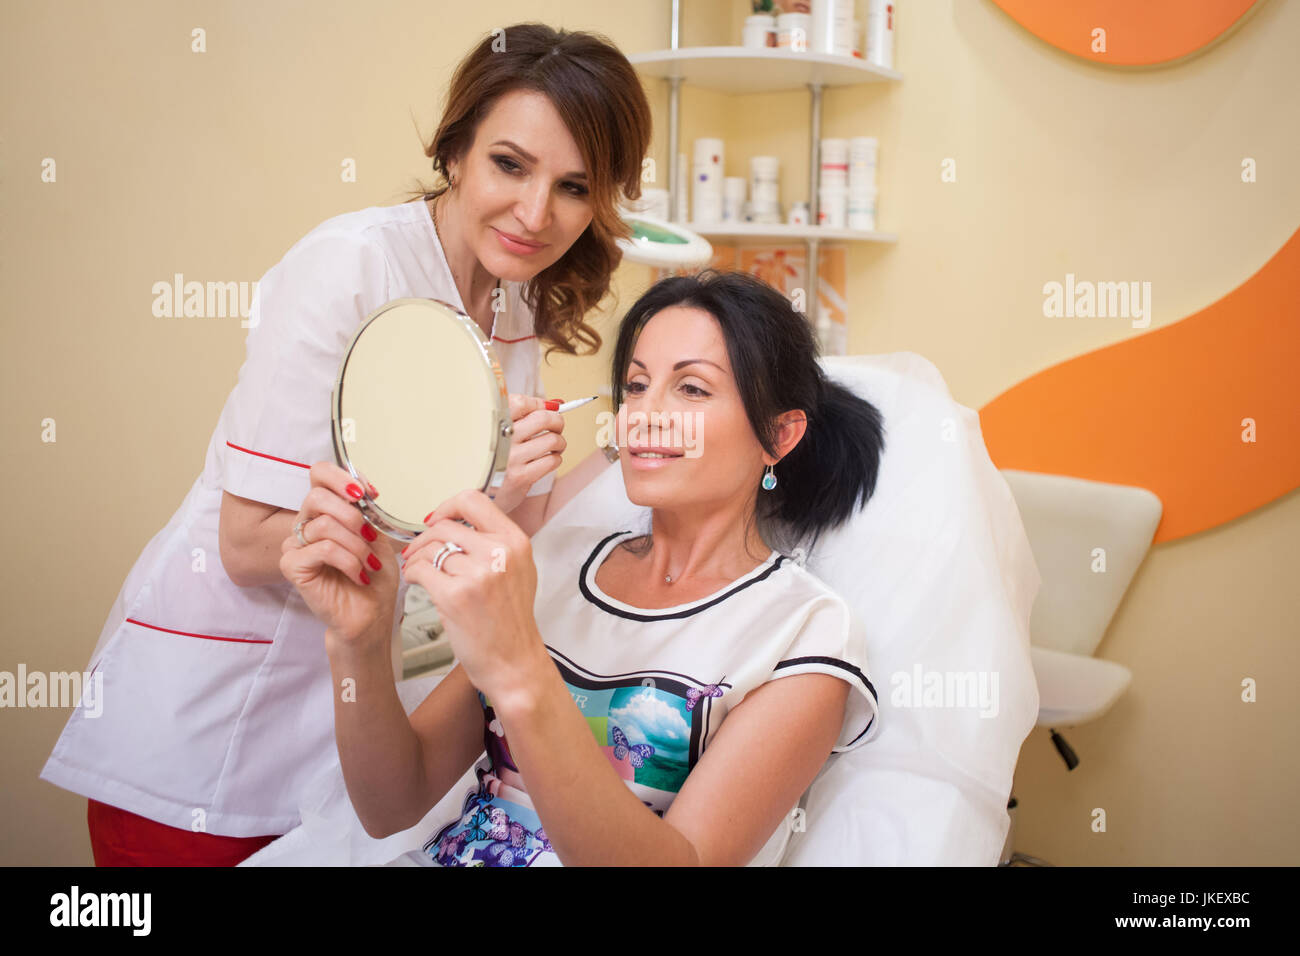 Cosmetology the doctor advises the patient - Stock Image